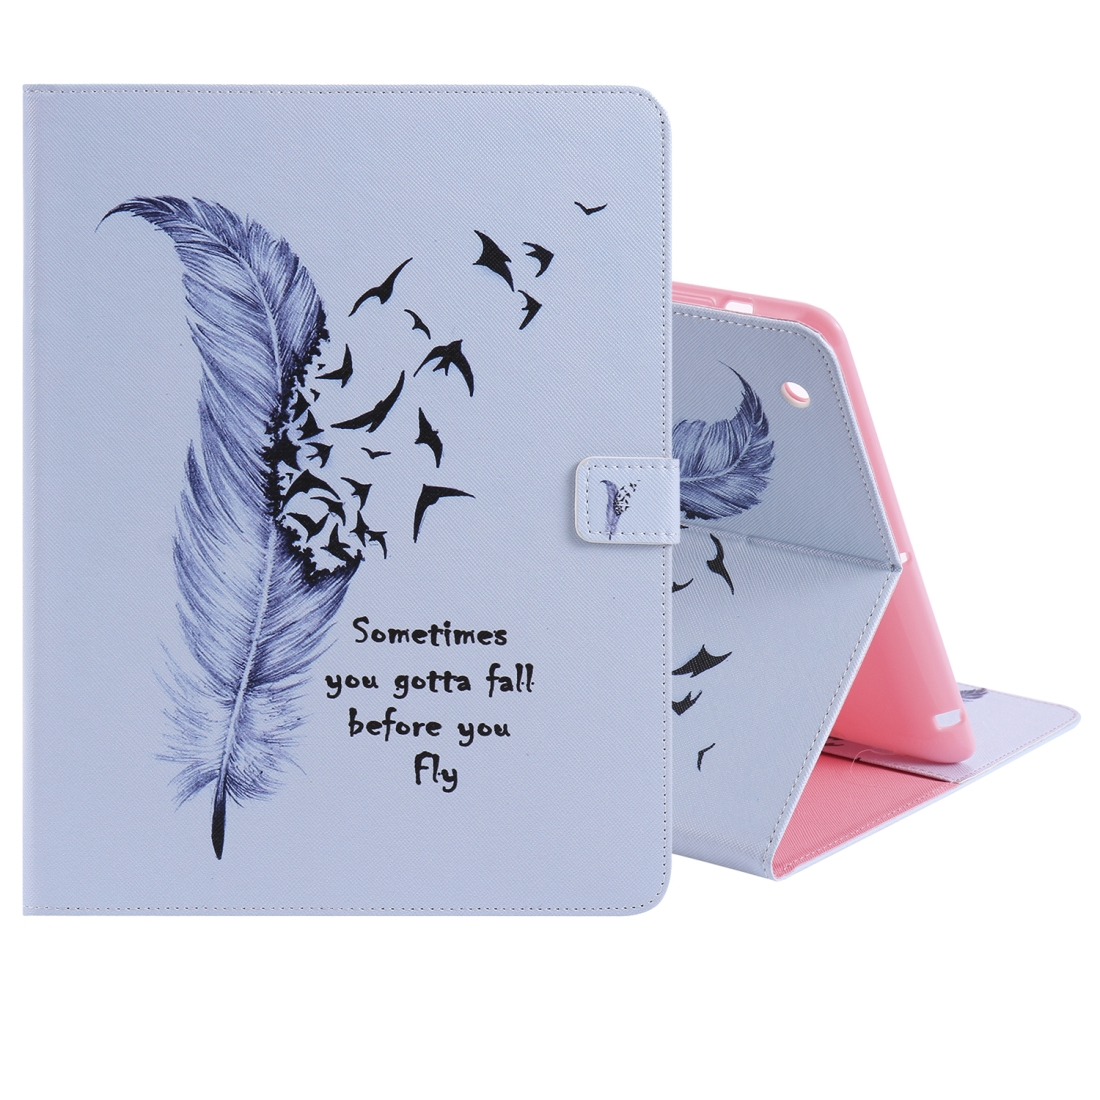 iPad 4 Case Featuring A Protective Durable Leather Cover, Slim Profile & Auto Sleep (Feather)